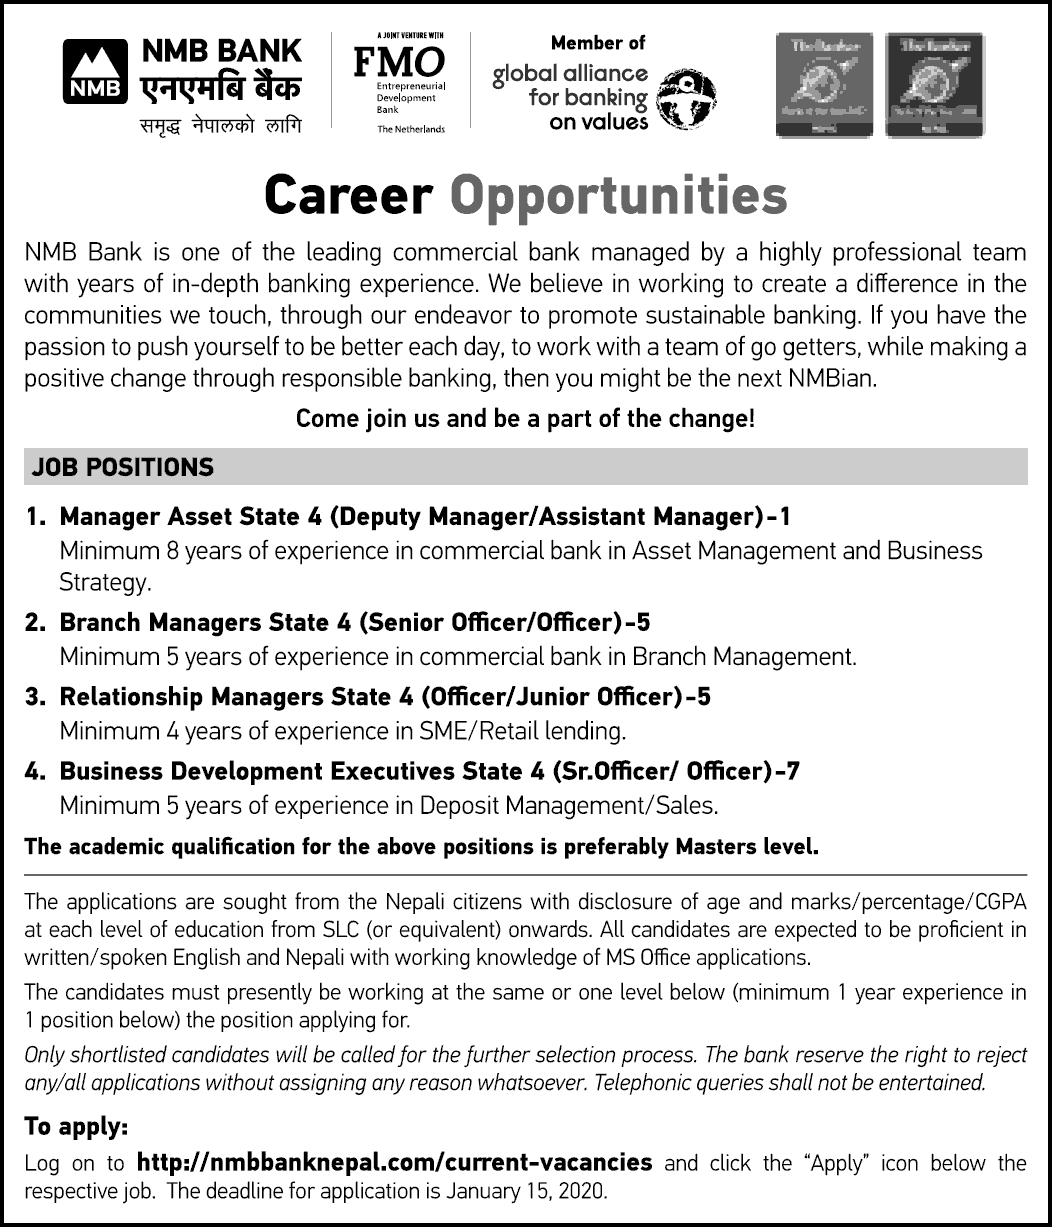 Career Opportunities at NMB Bank